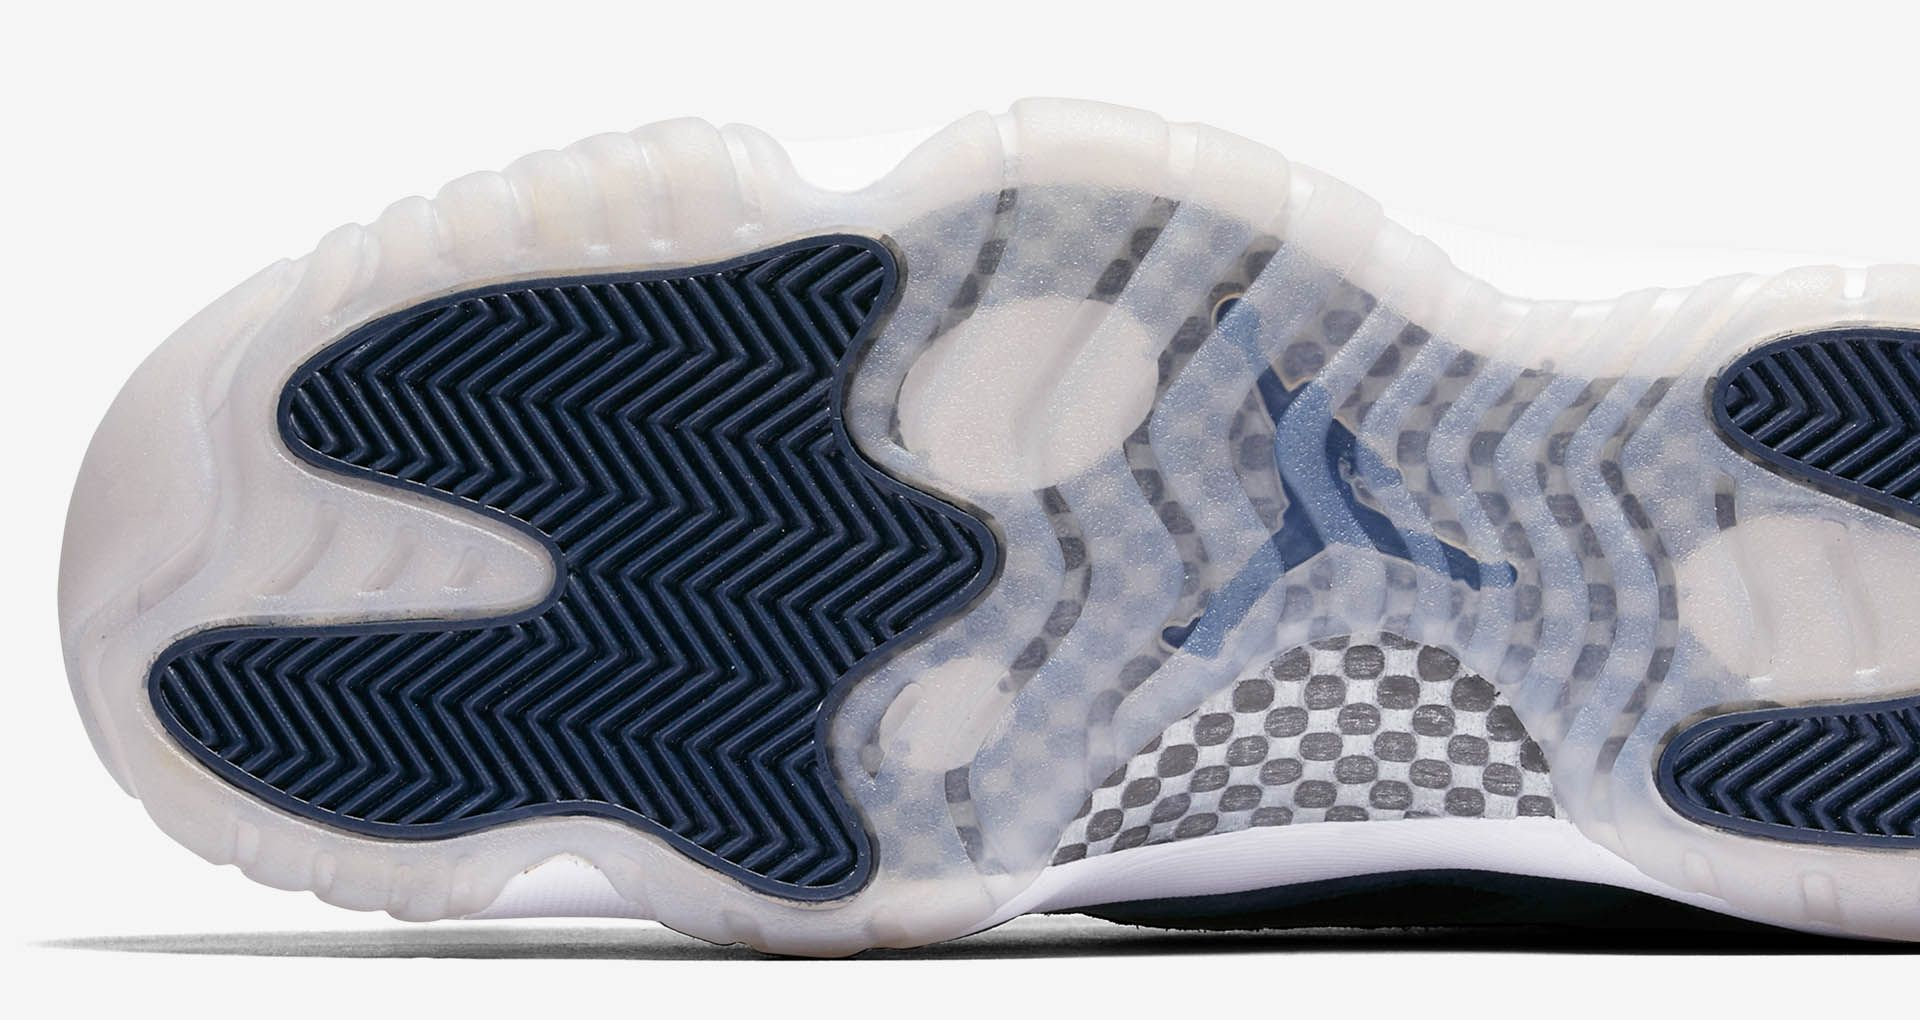 3107122472f Official images and release date for the Air Jordan 11 Low IE Obsidian  (style 919712-400), a brand new design for the alternate Air Jordan XI  model.